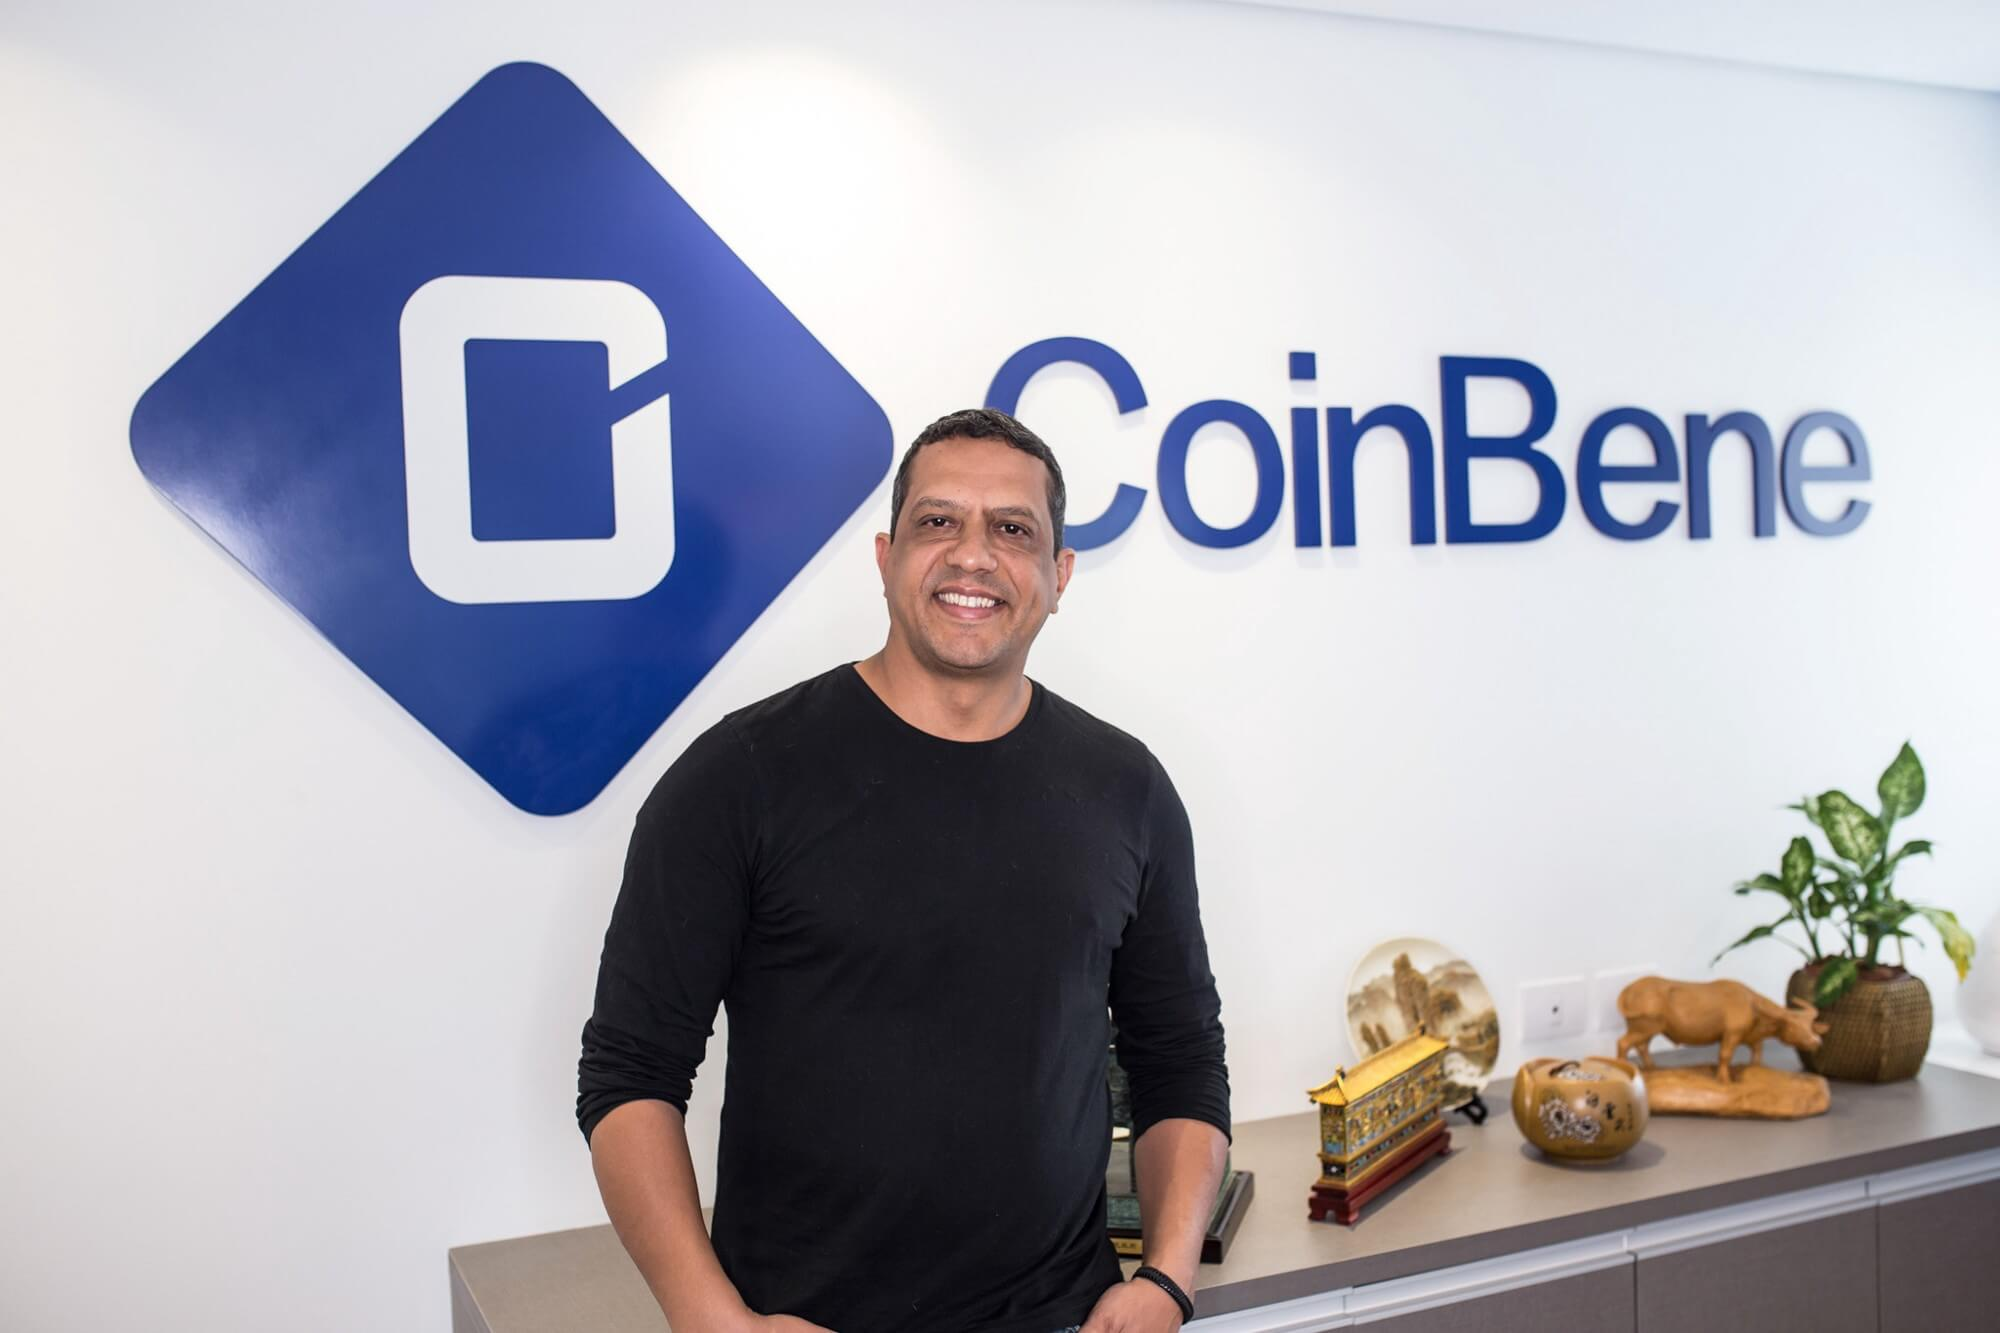 COINBENE PARTNERS WITH KOMODO TO BOOST ITS SECURITY SYSTEM